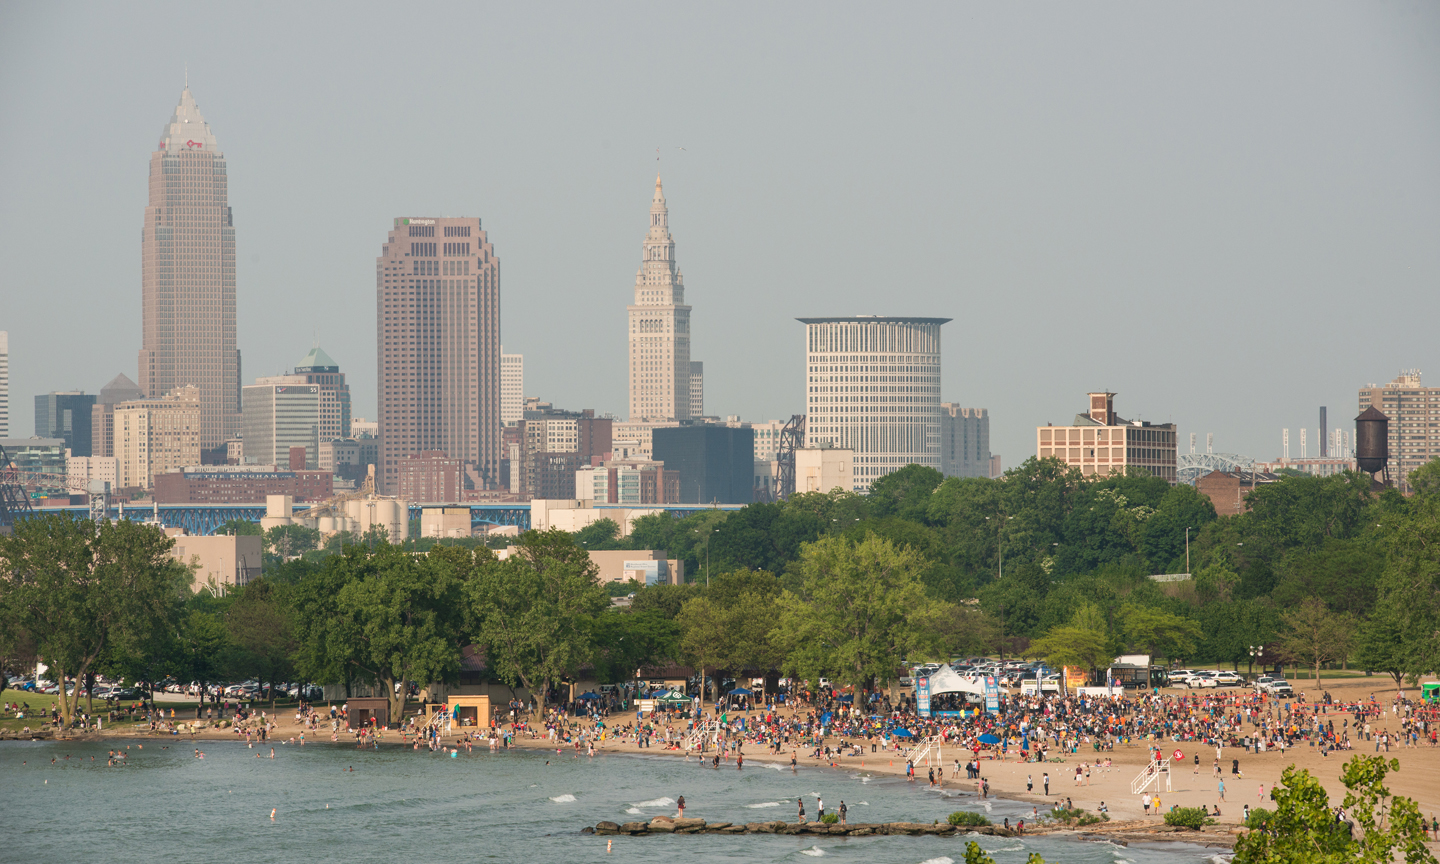 Cleveland Metroparks popular lakefront concert series Edgewater LIVE and Euclid Beach LIVE return